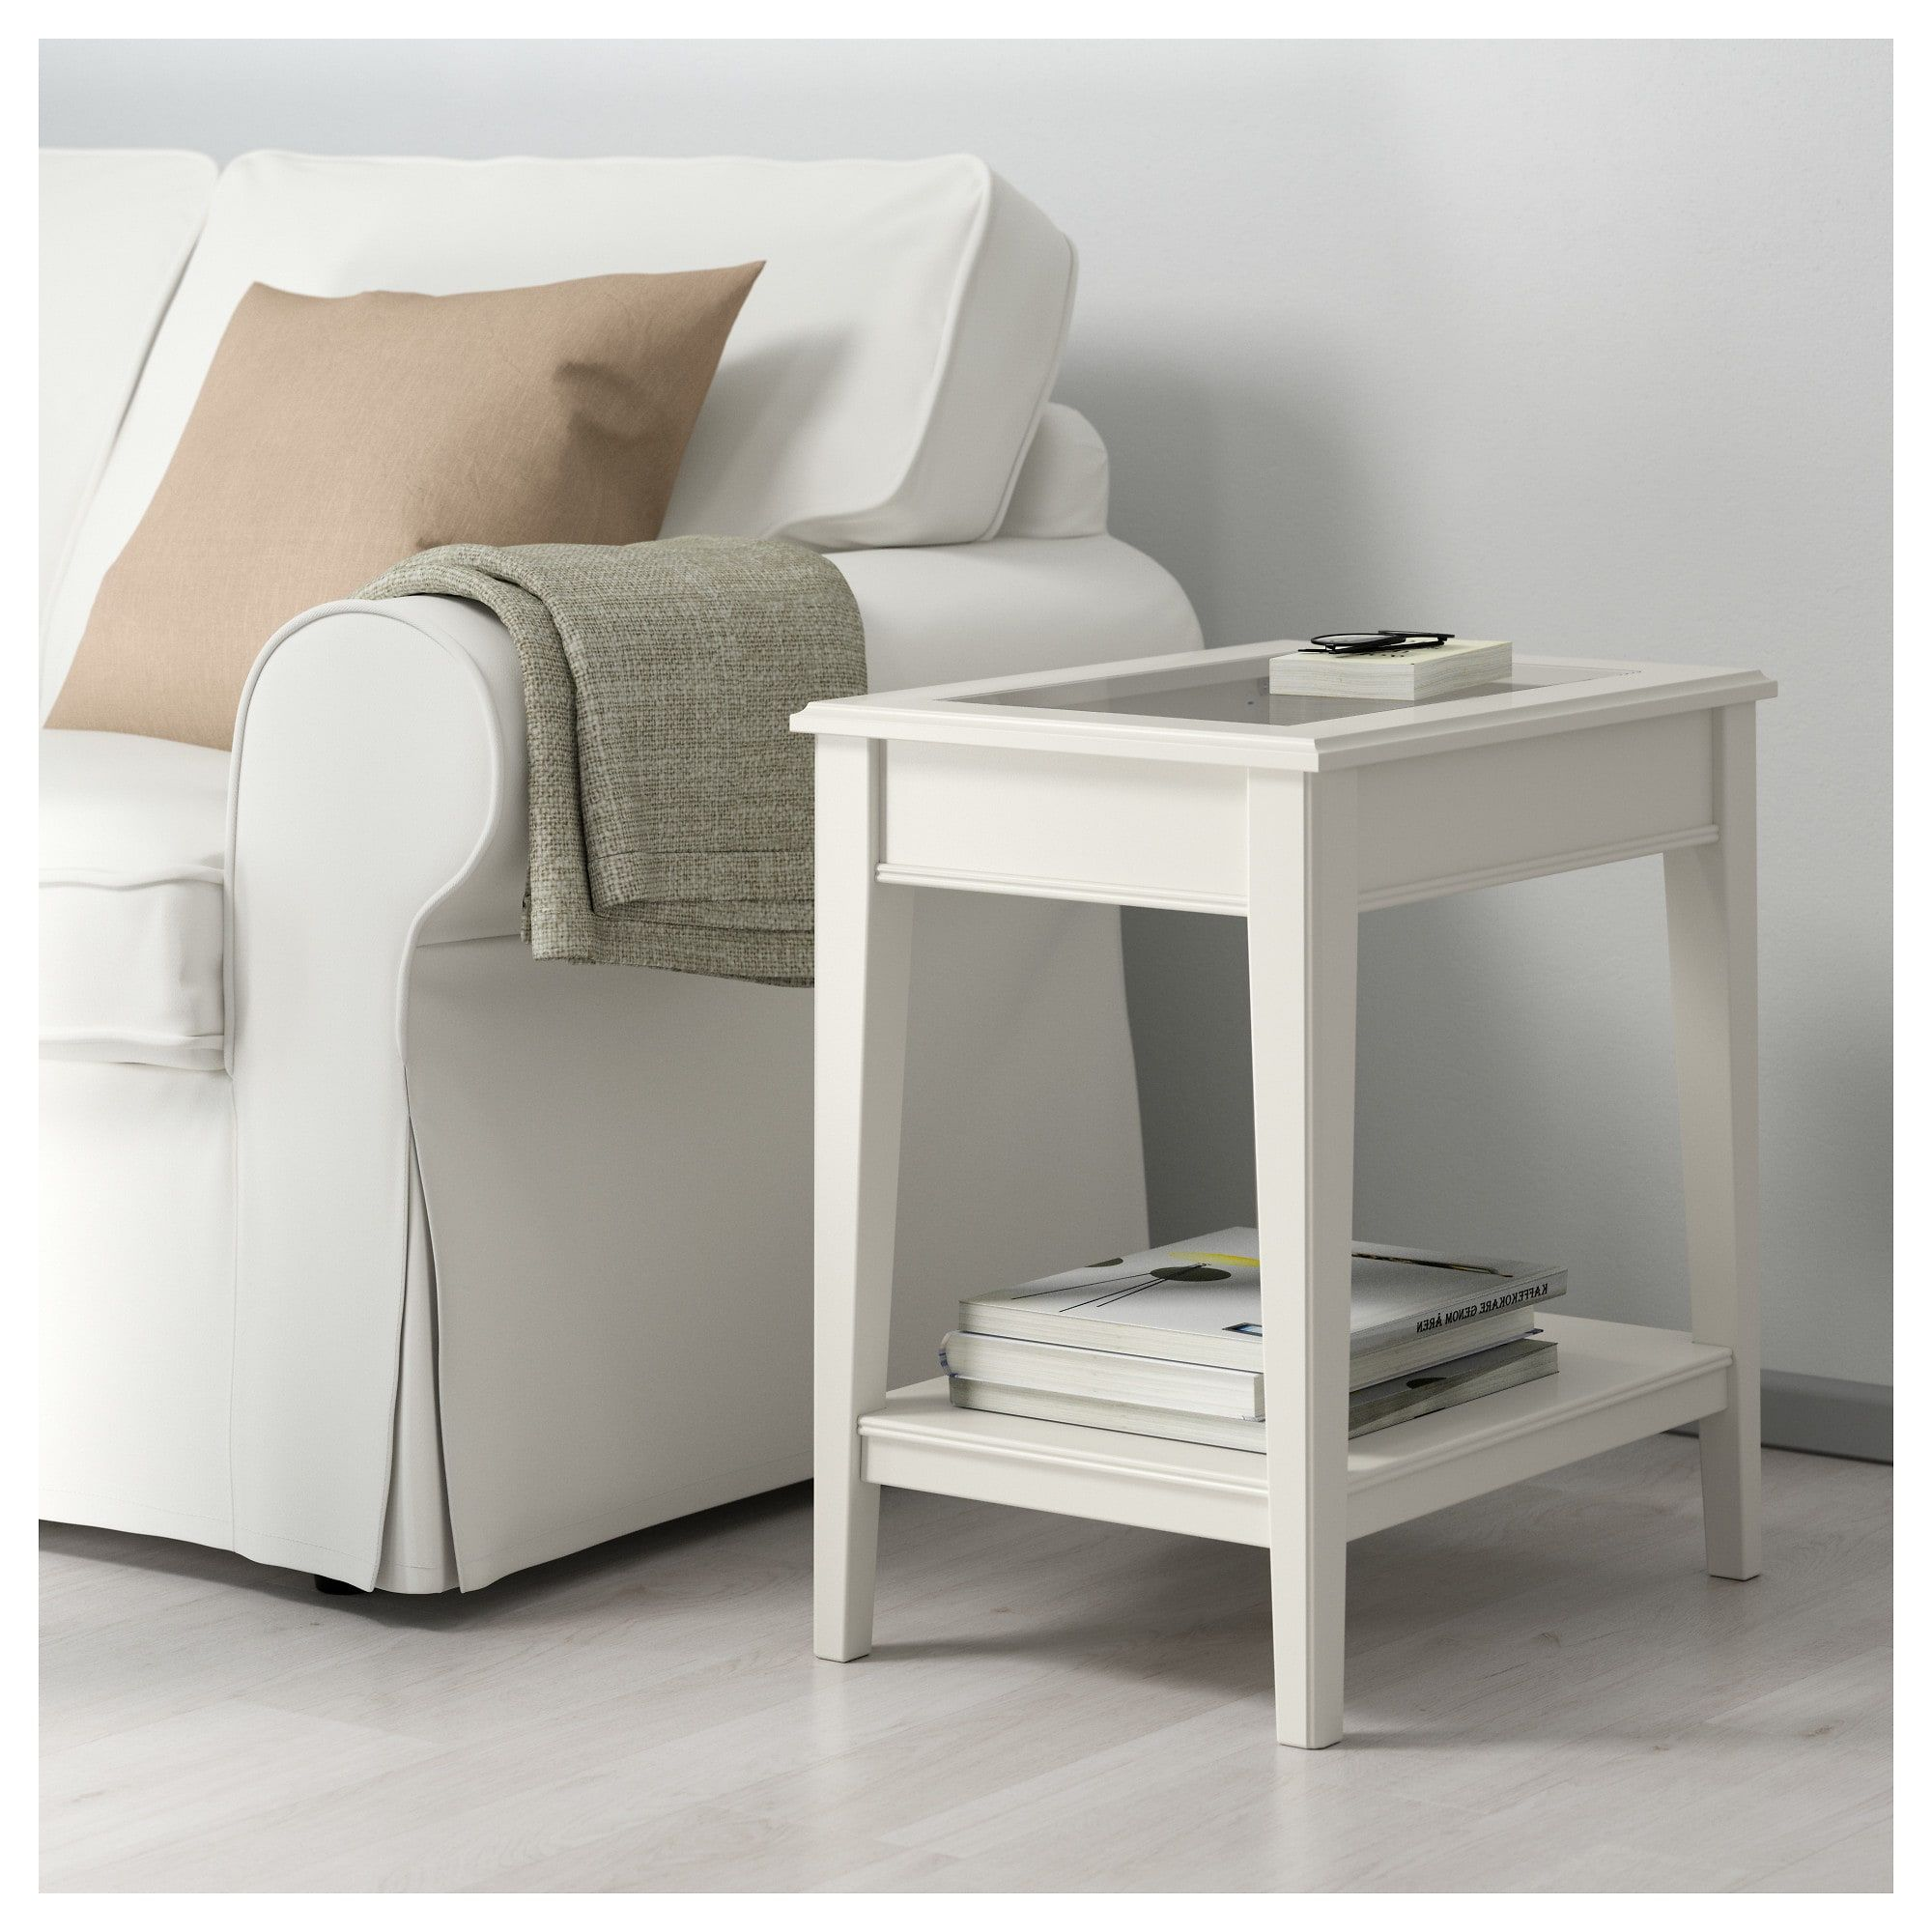 IKEA LIATORP White, Glass Side table White side tables